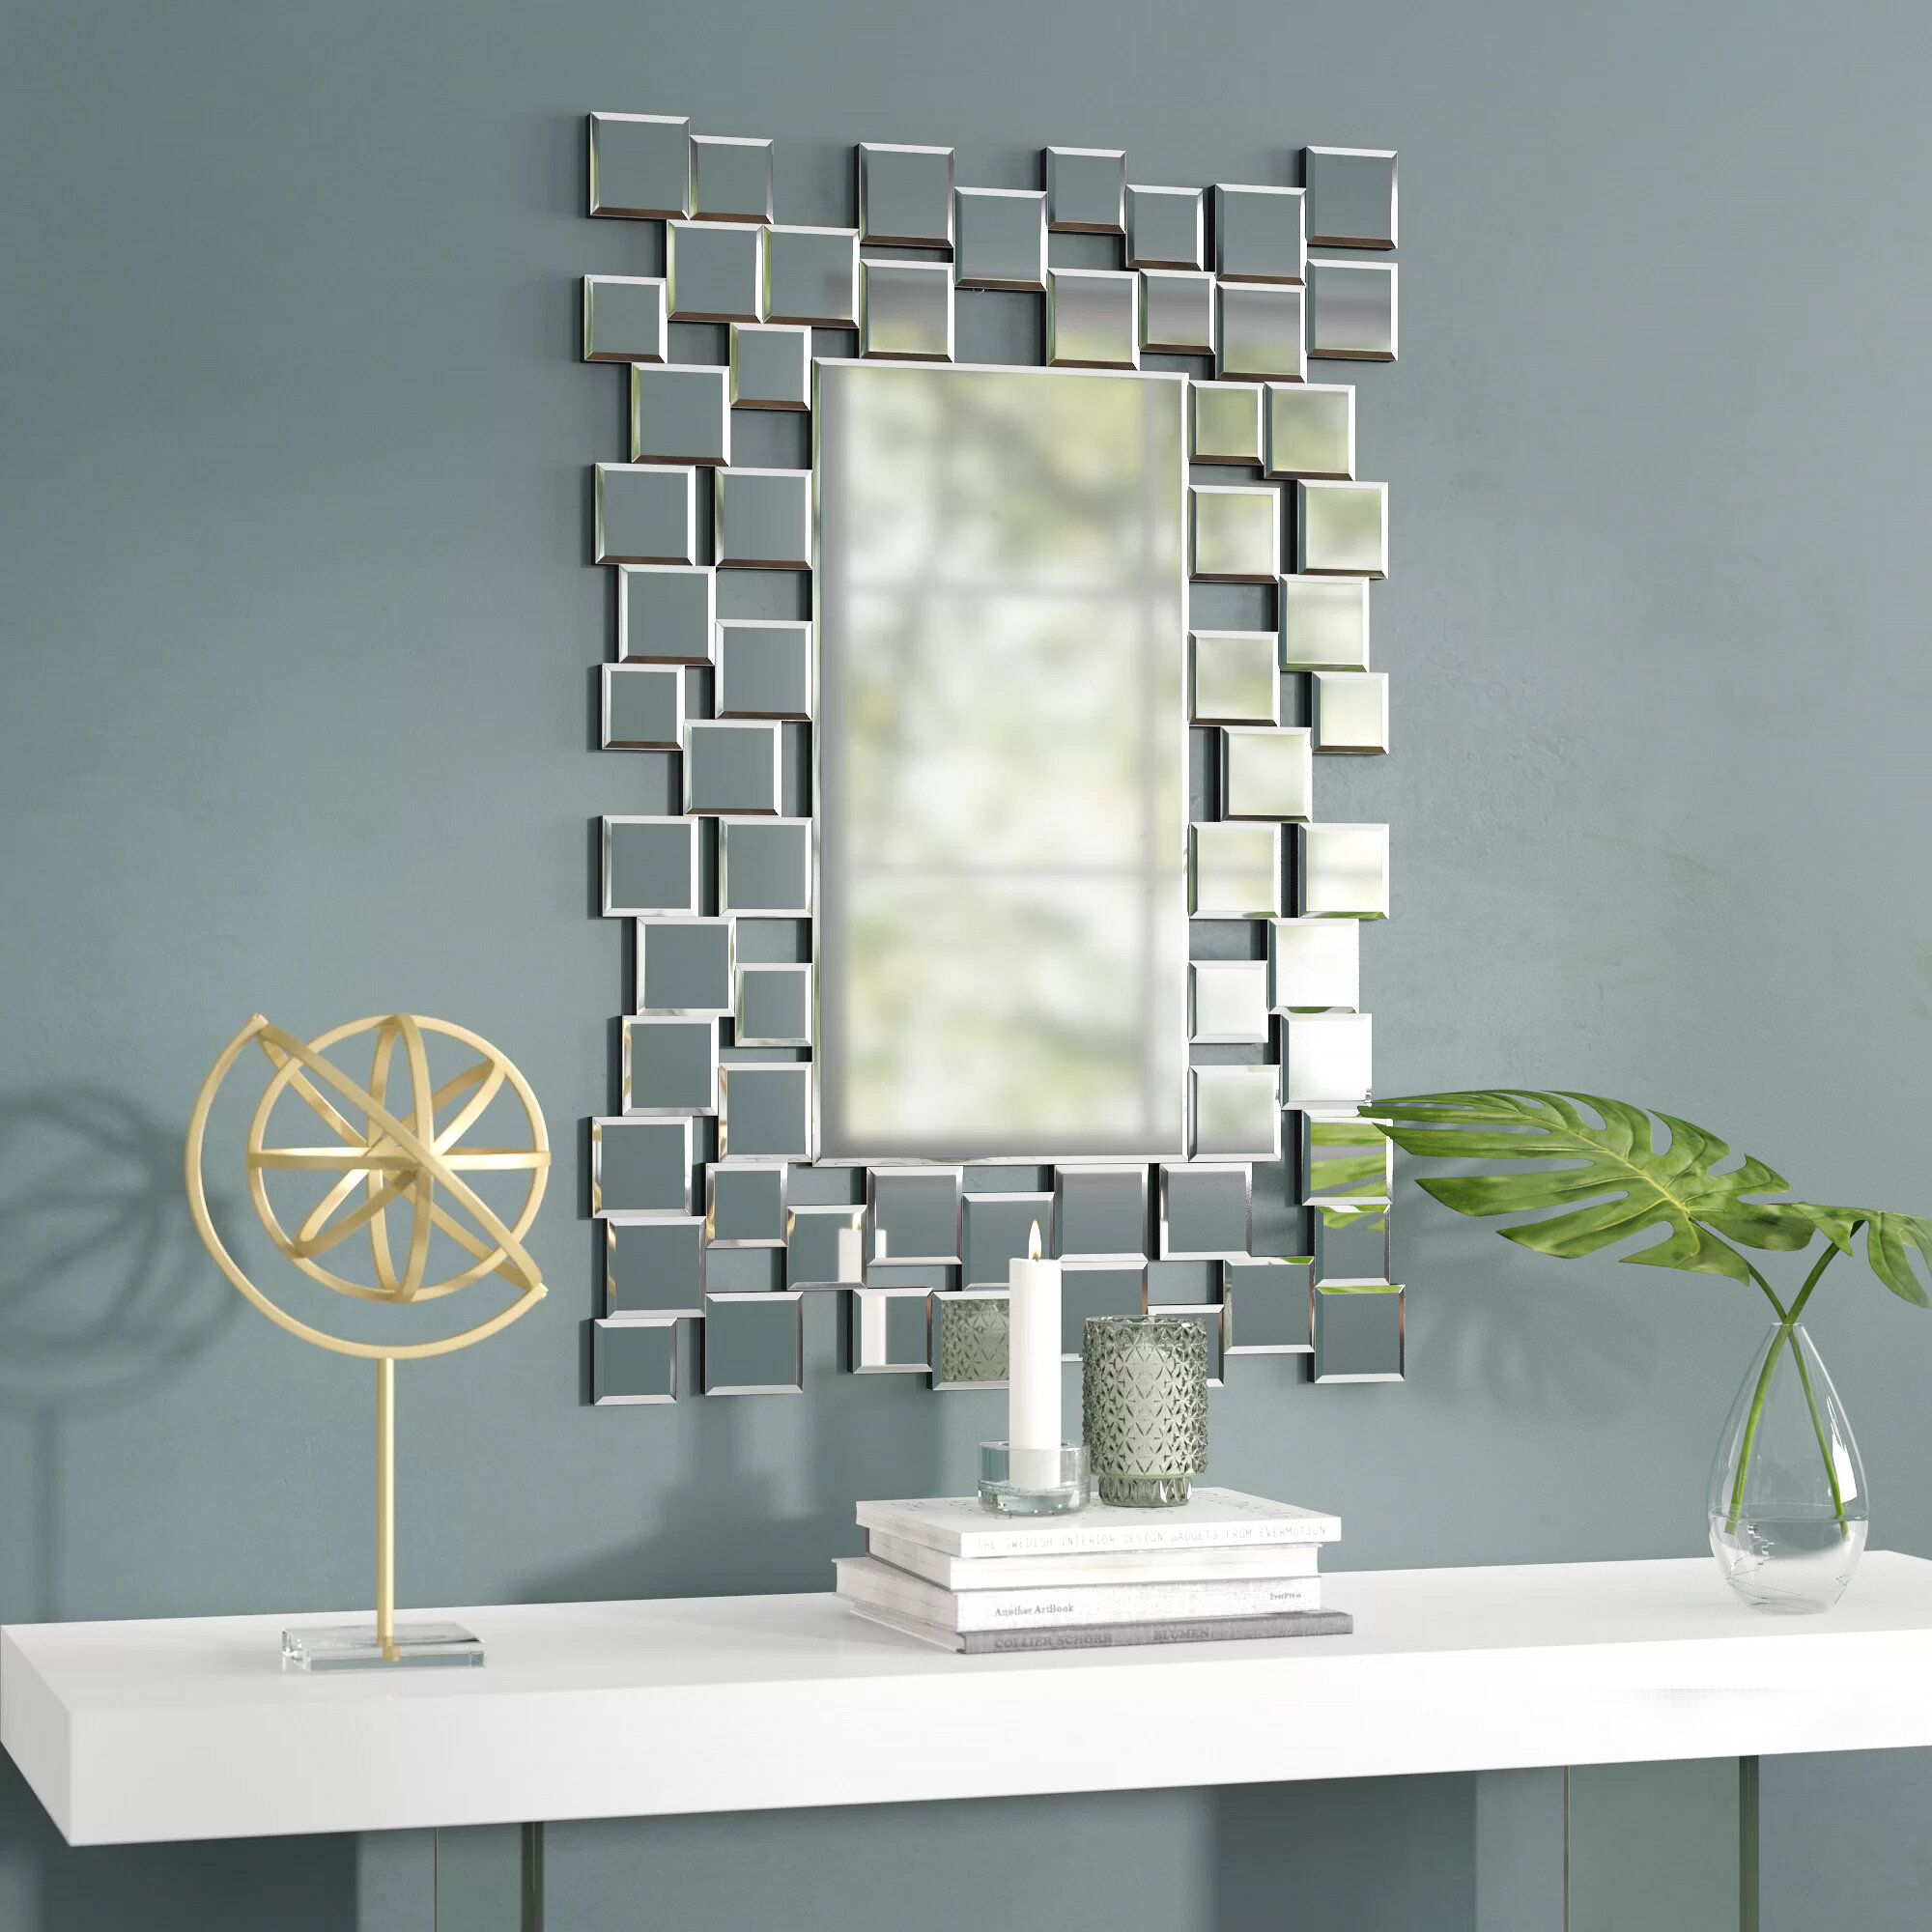 Pennsburg Rectangle Wall Mirror Regarding Famous Brayden Studio Modern & Contemporary Accent Wall Mirror (View 6 of 20)